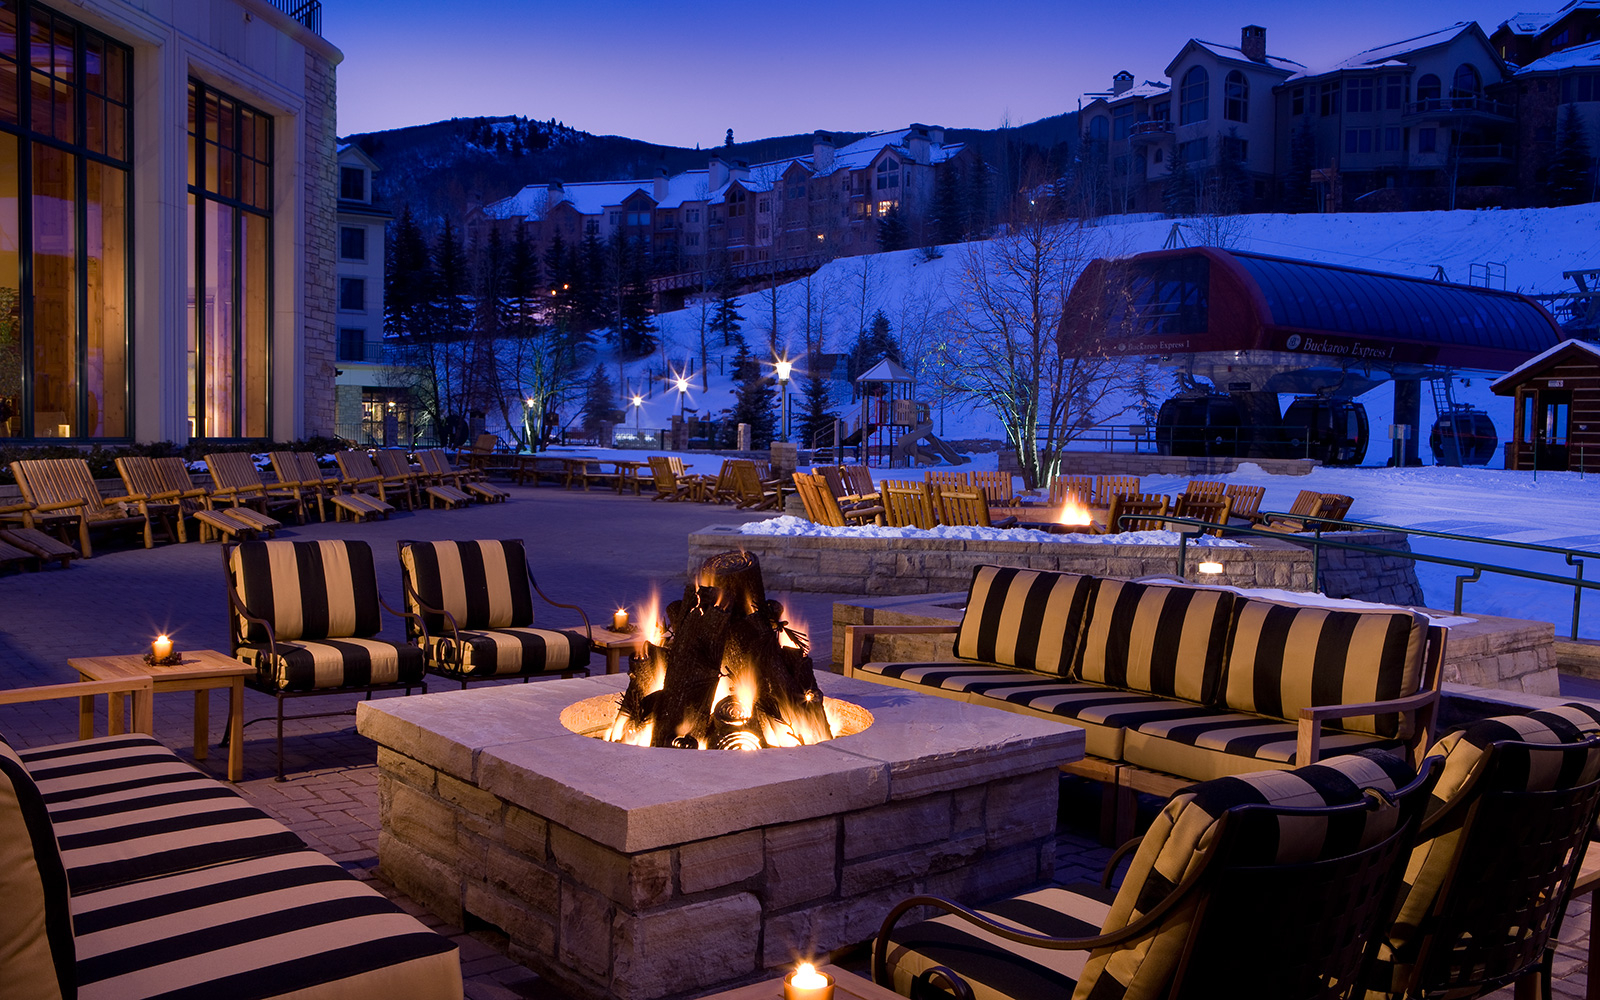 No. 14 Park Hyatt Beaver Creek, Colorado